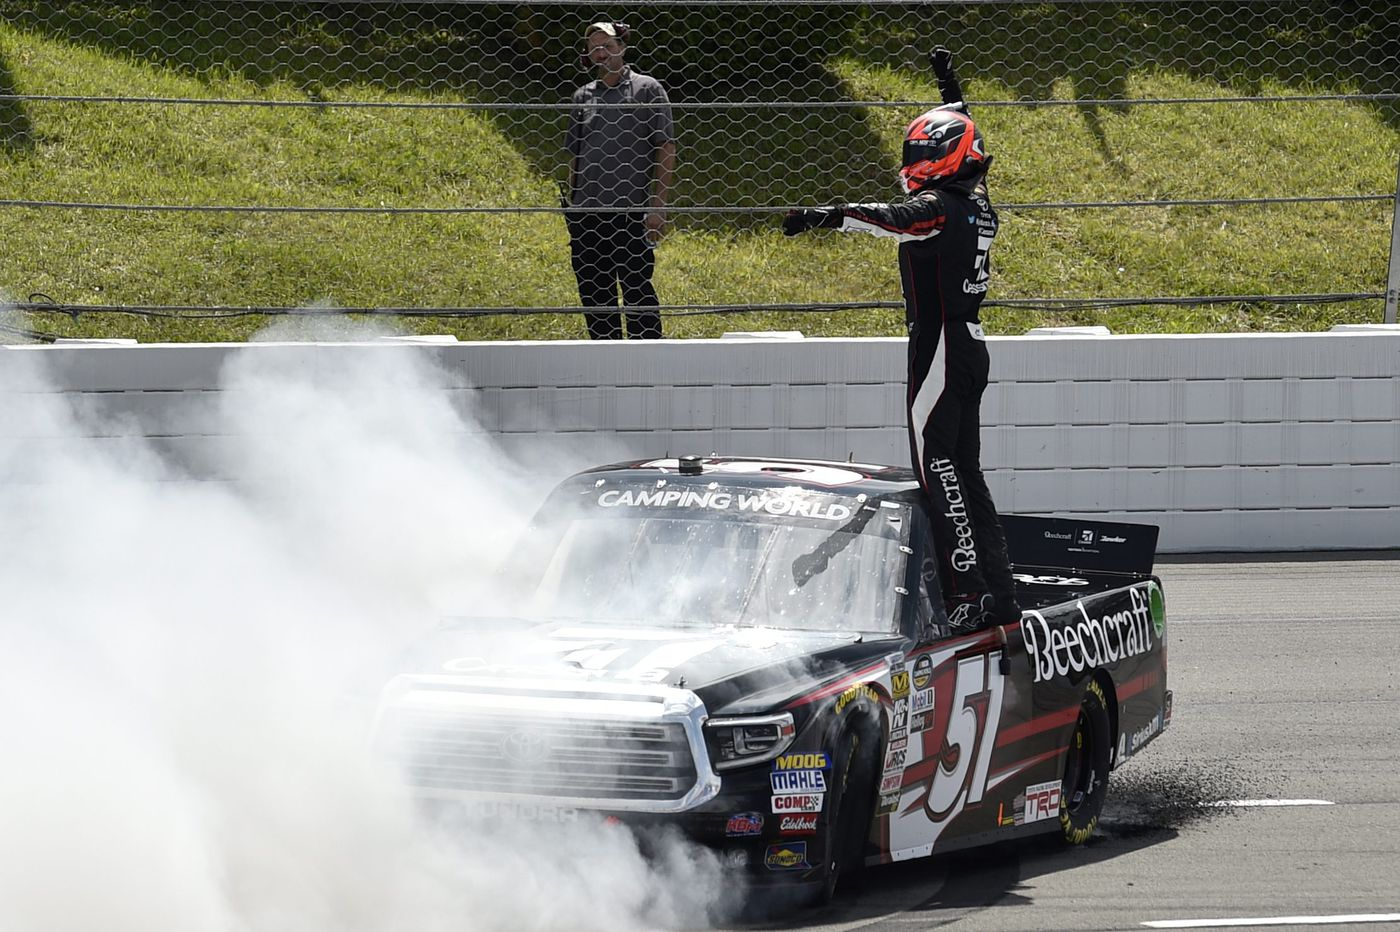 Kyle Busch wins Truck Series race to tie all-time record of 51